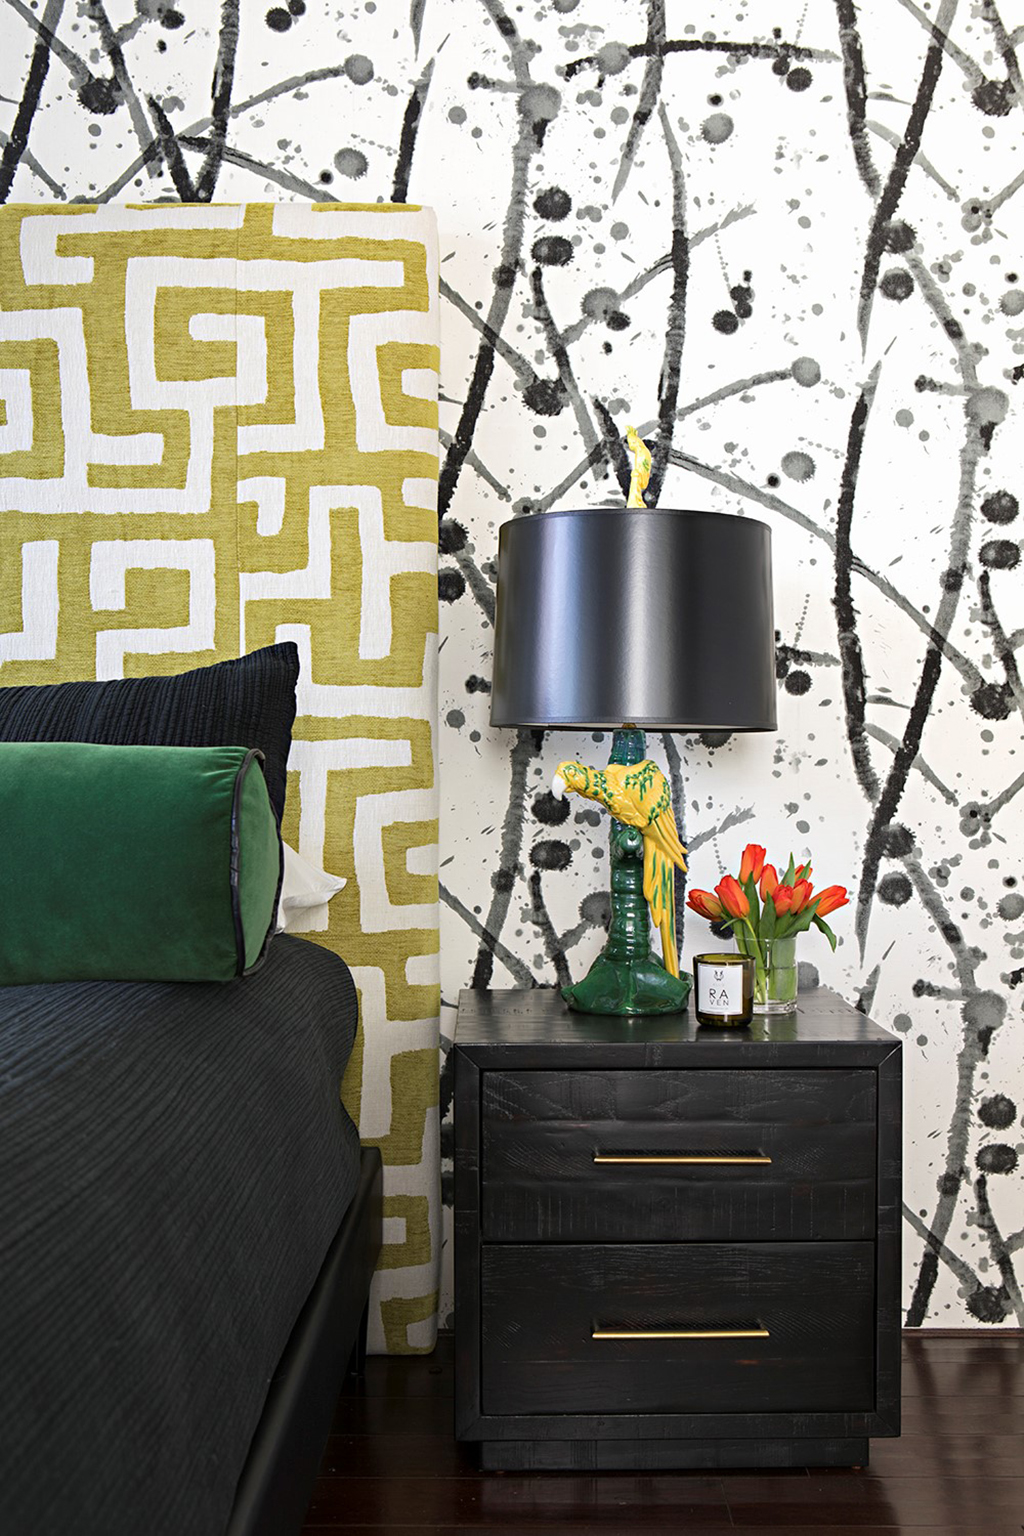 This eclectic, modern space shows that you can play with multiple shades and patterns in a room and it all comes together perfectly. Designed by DI graduate Kelly Hinchman of Studio H Design Group.